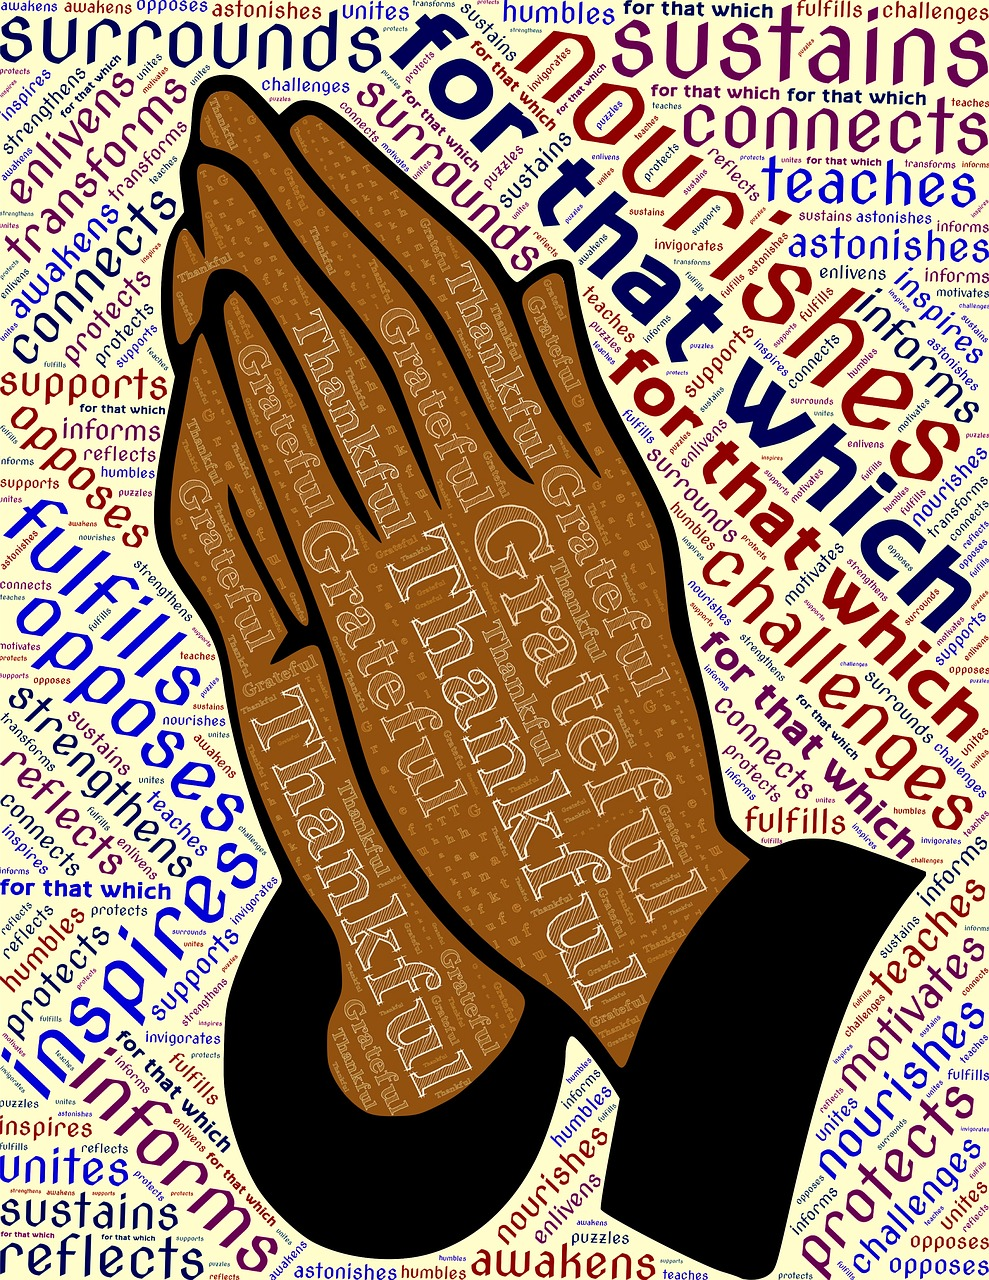 Pray Hands Grateful - Free image on Pixabay